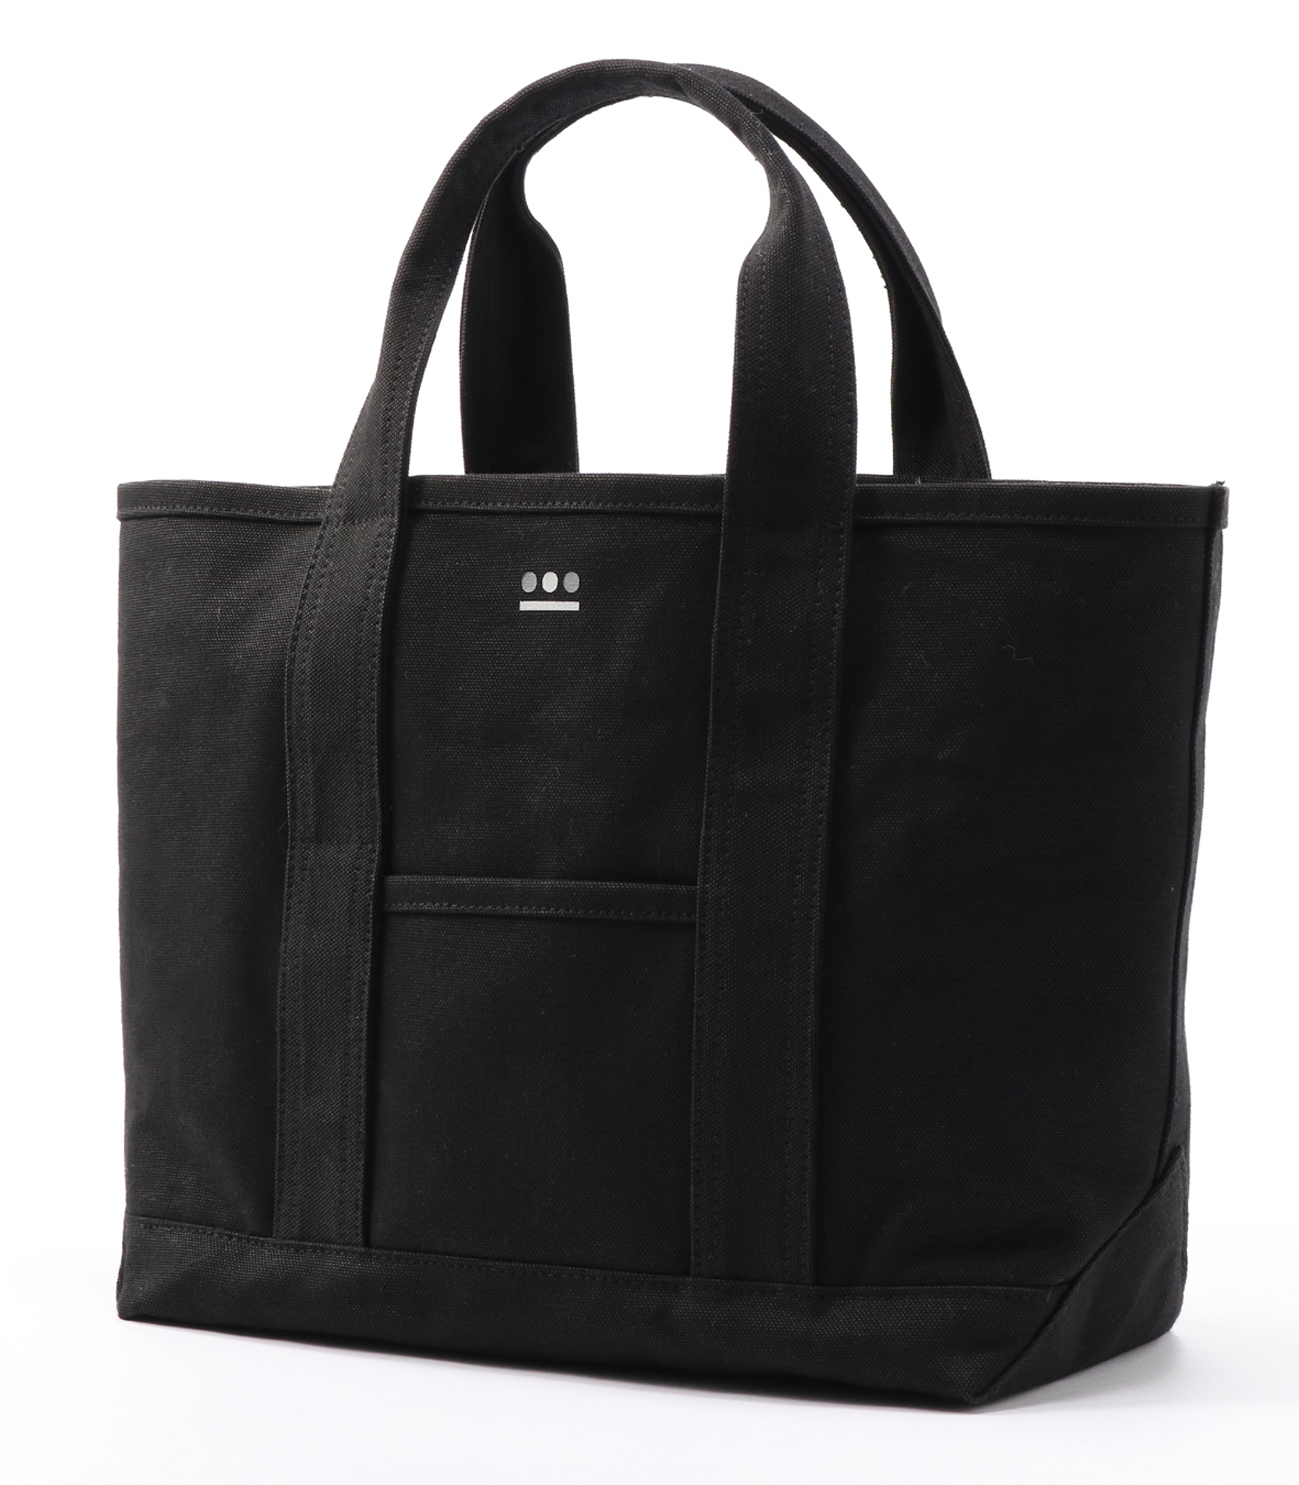 middle tote bag 詳細画像 black 1